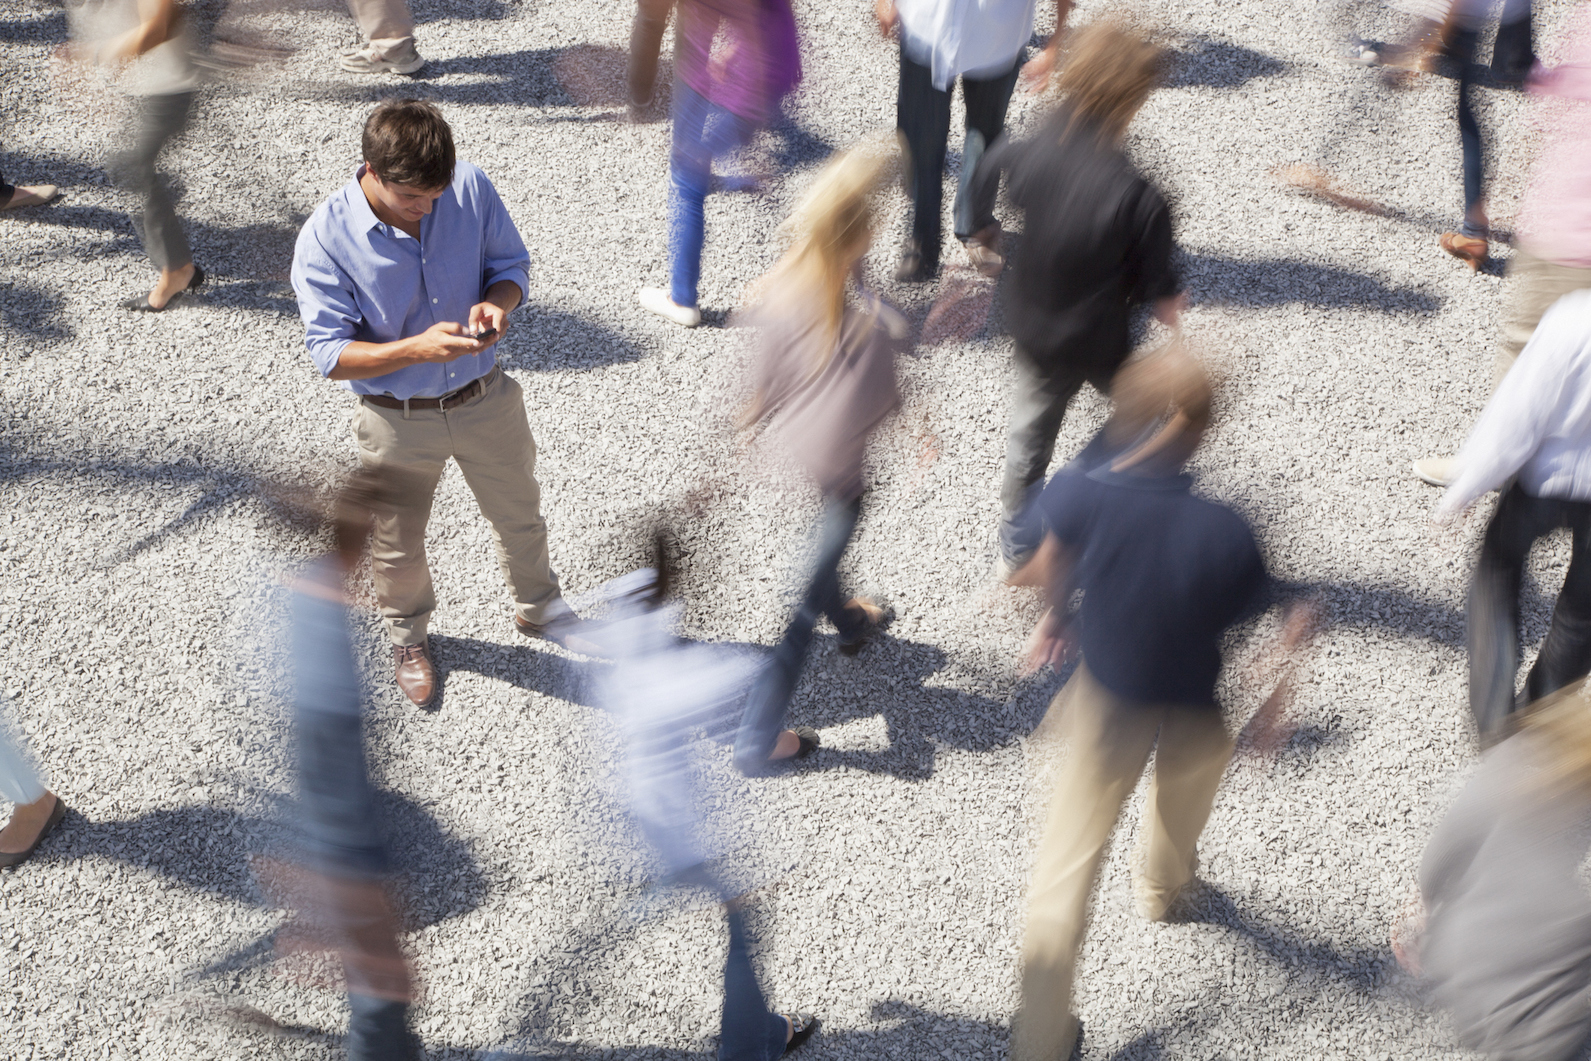 Man checking cell phone among rushing crowd